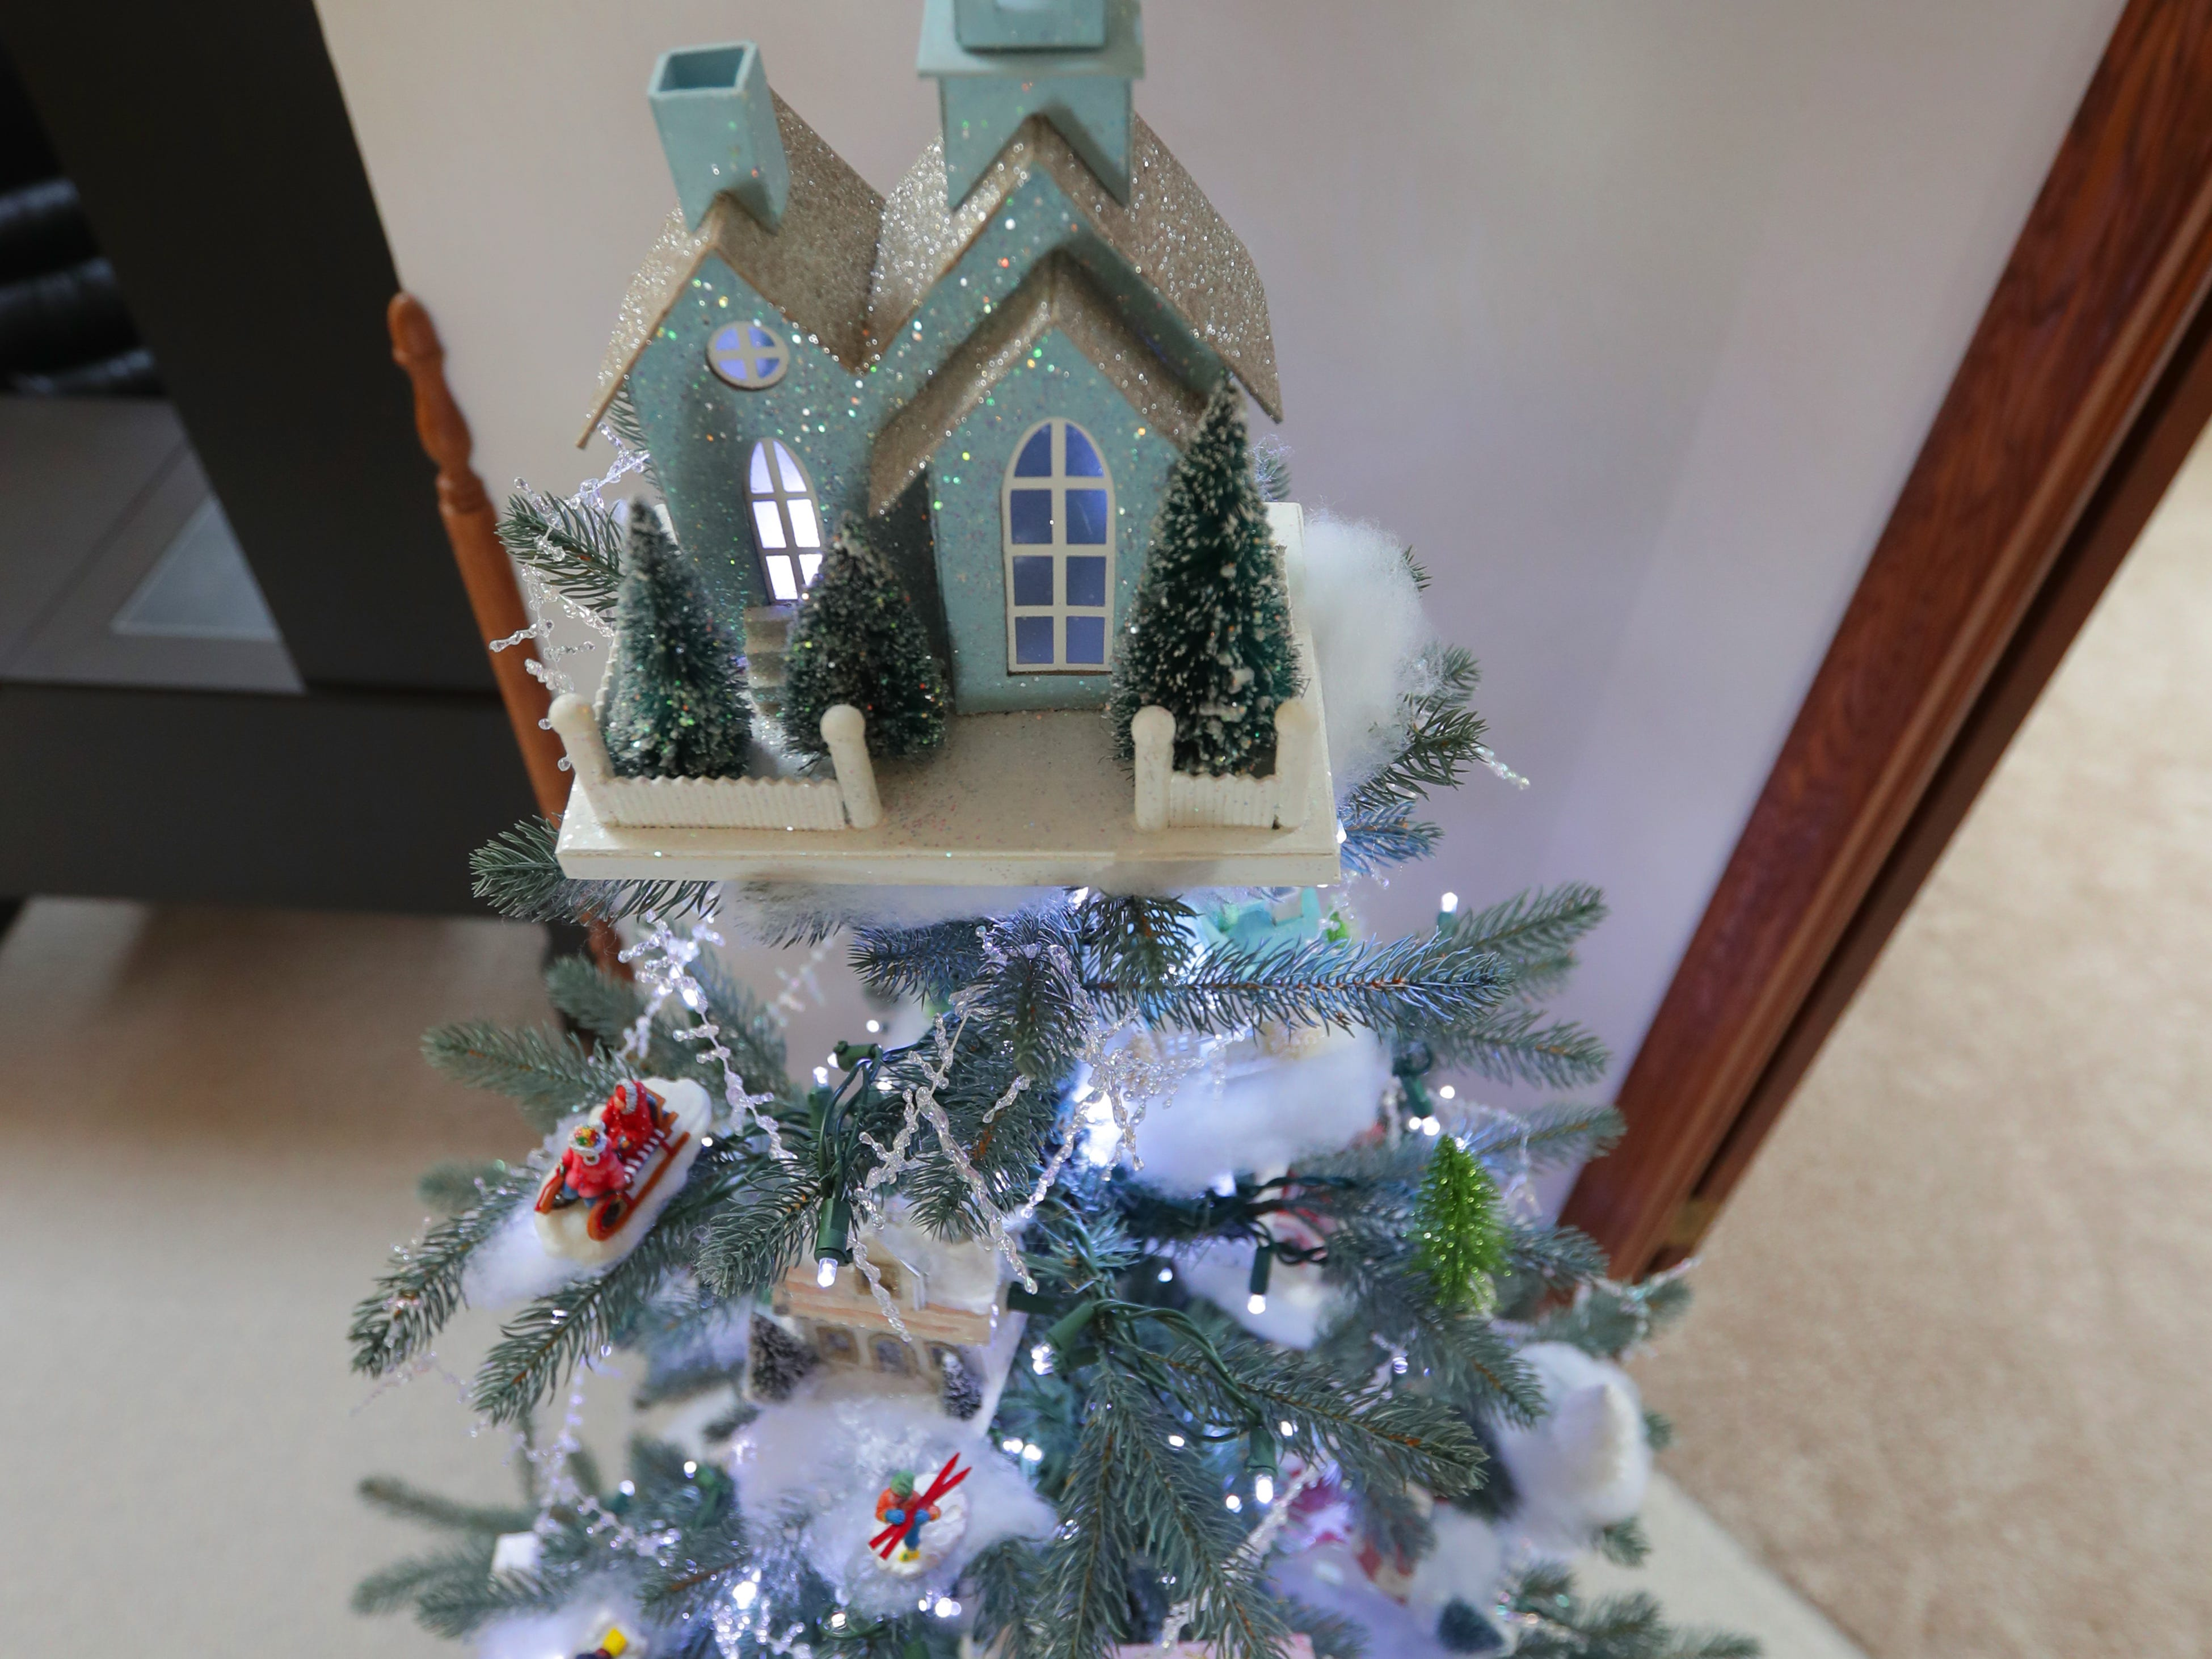 A tree on the upper floor is decorated with miniature Christmas village houses.